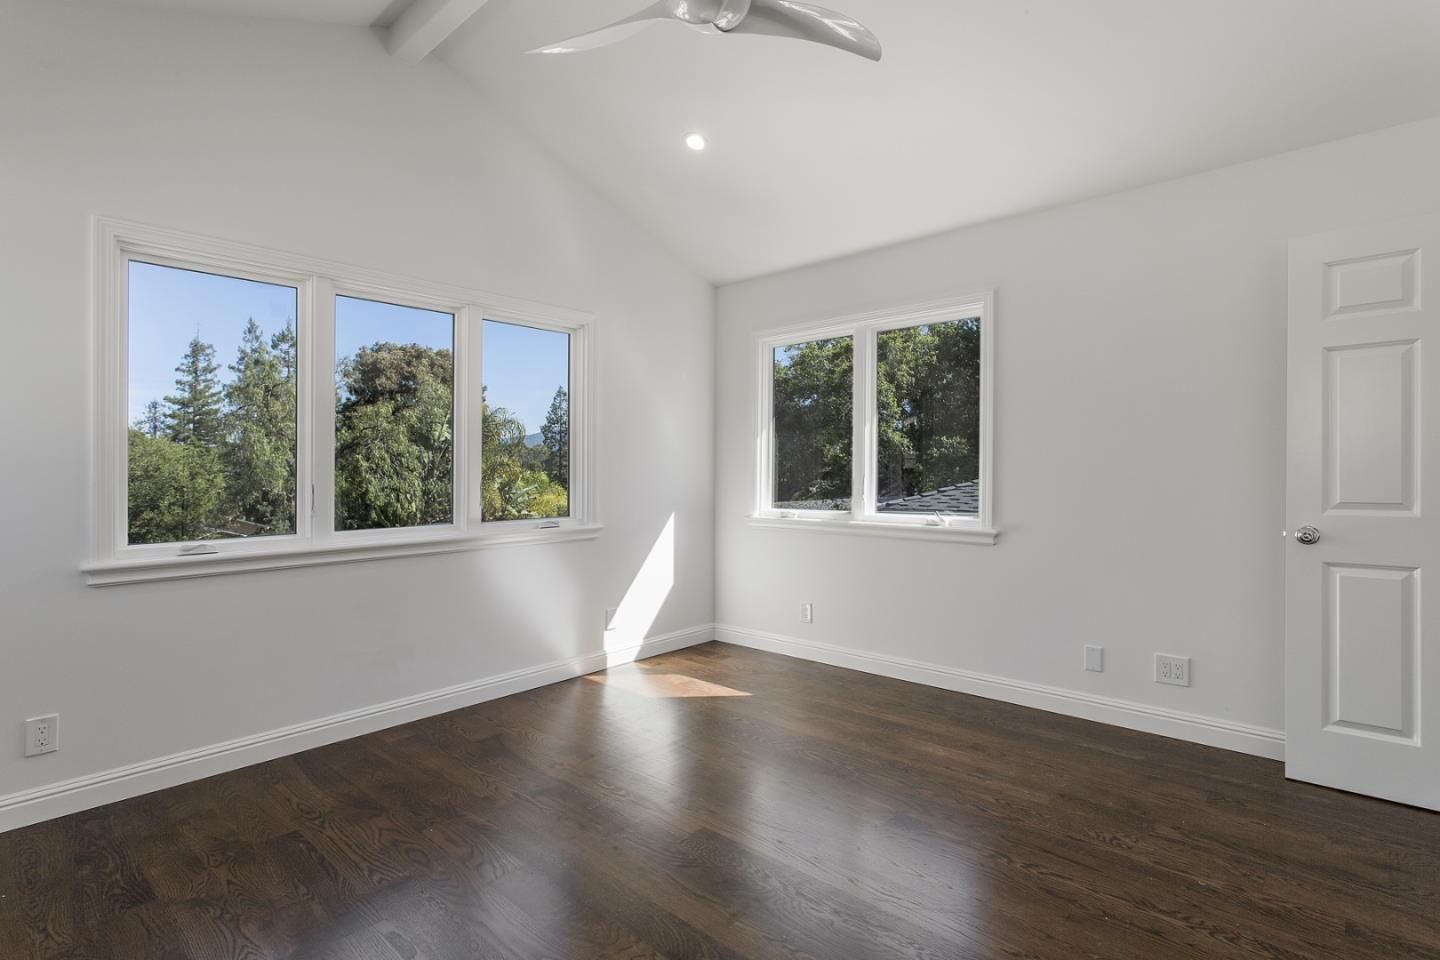 Additional photo for property listing at 2332 Eastridge Ave  MENLO PARK, CALIFORNIA 94025